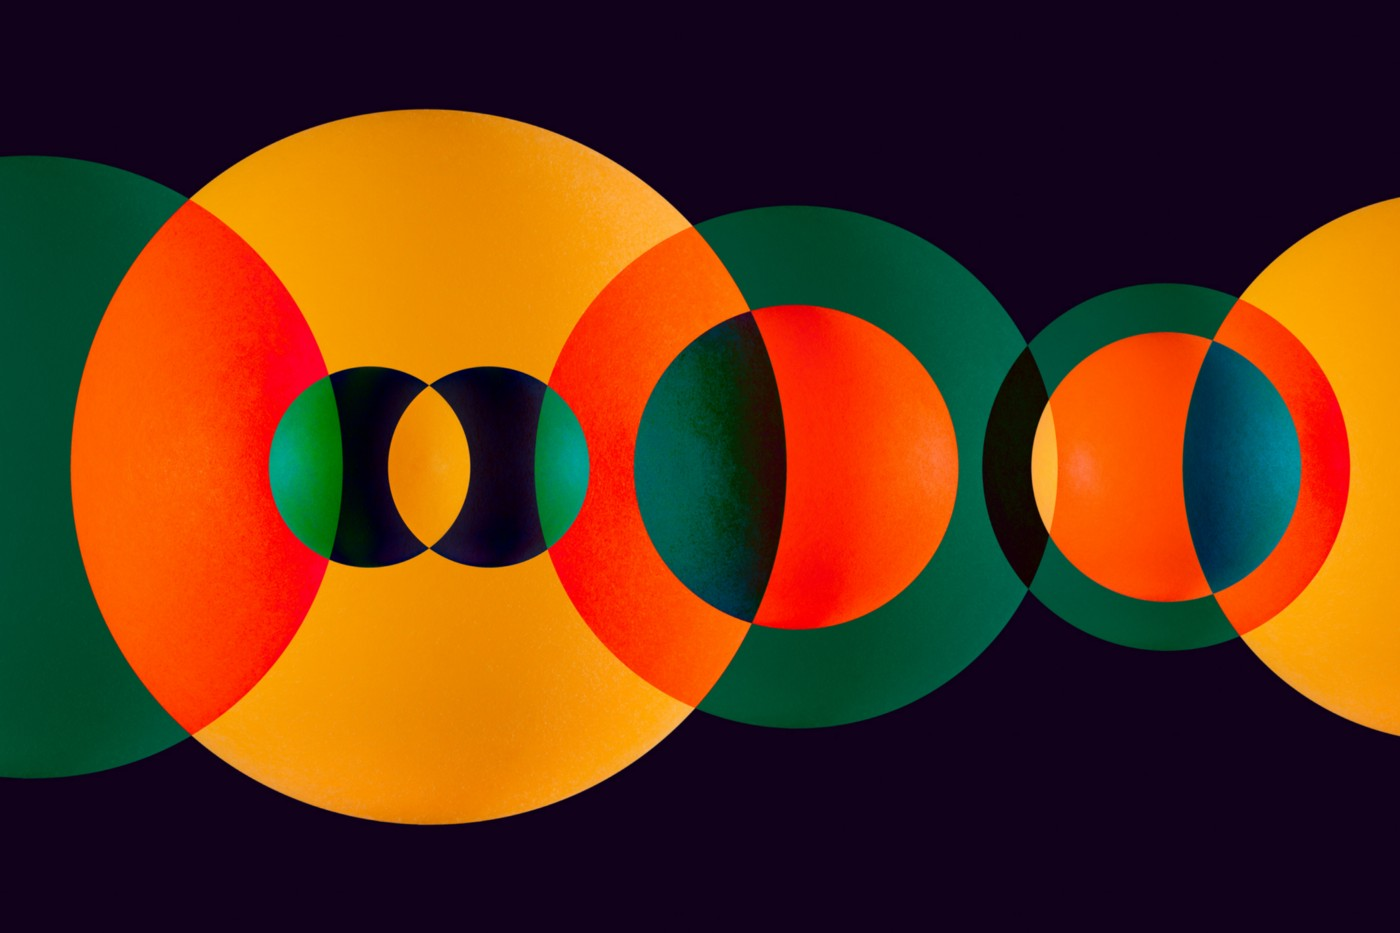 Green and orange circle spheres overlapping on solid dark background.